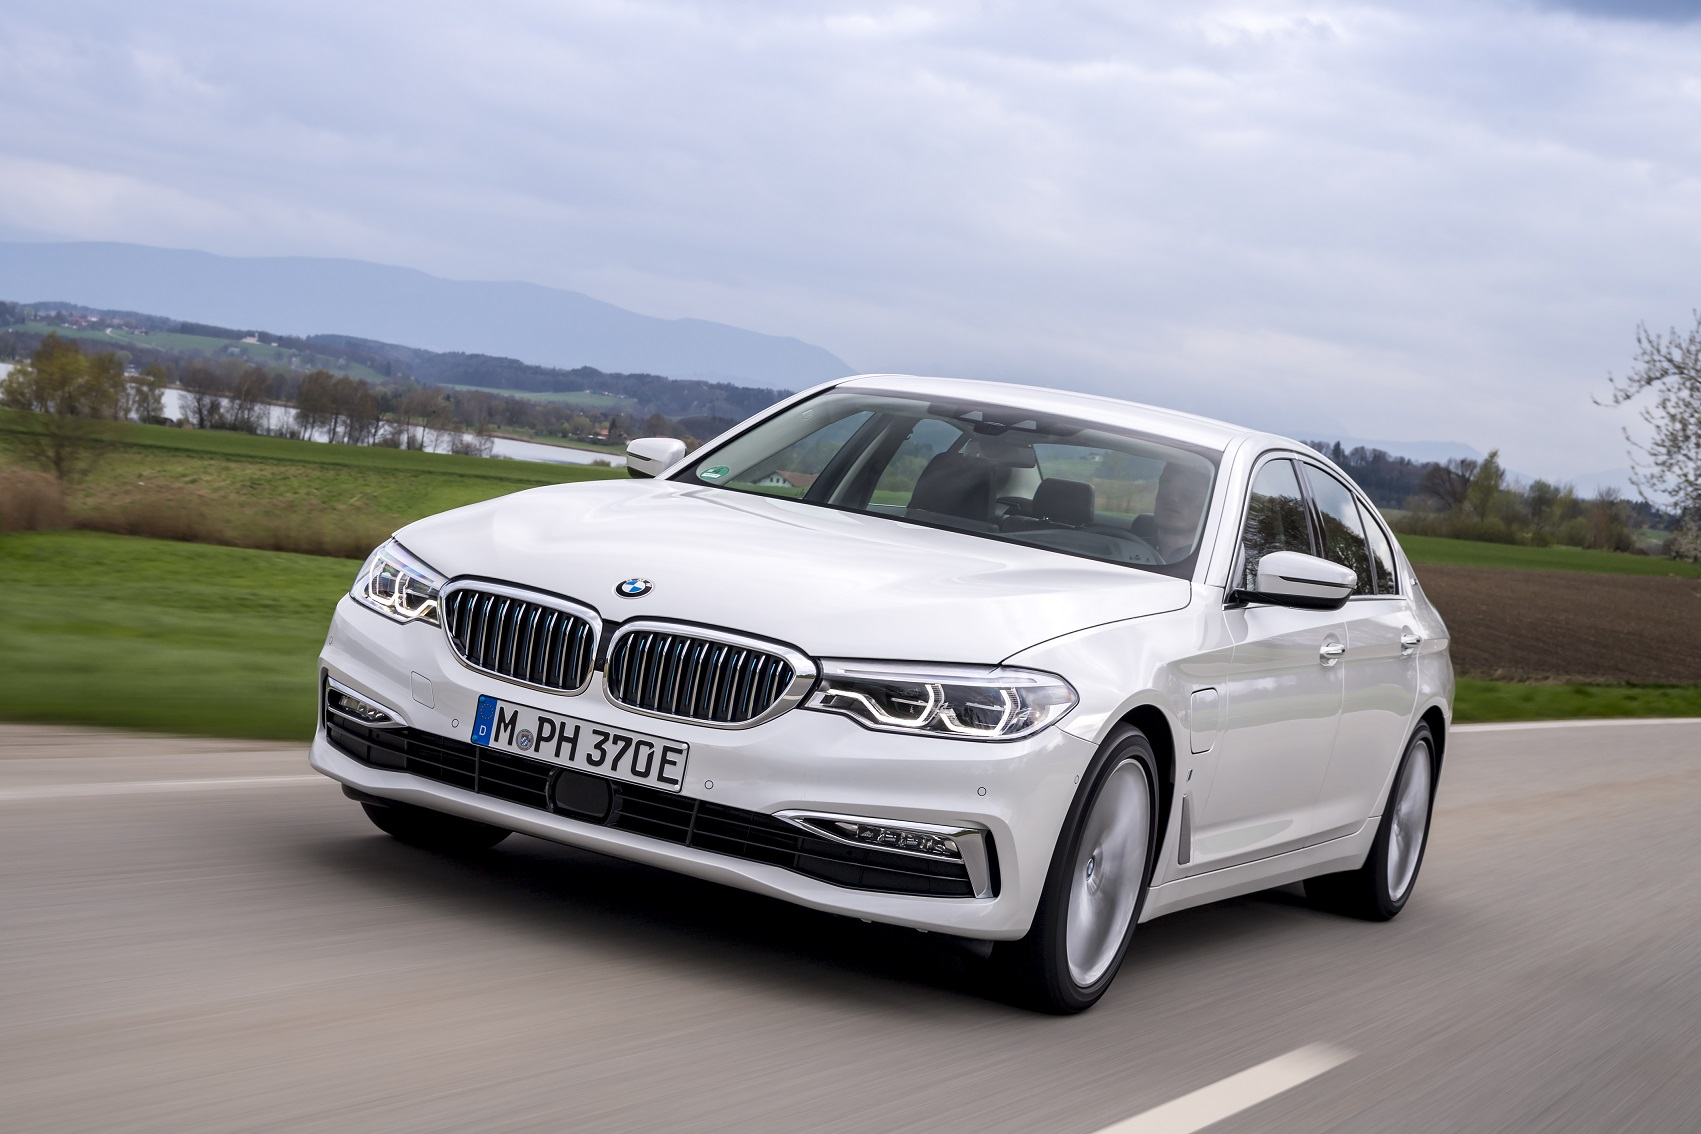 The BMW BMW 5 Series Hybrid with eDrive Technology 530e - launched